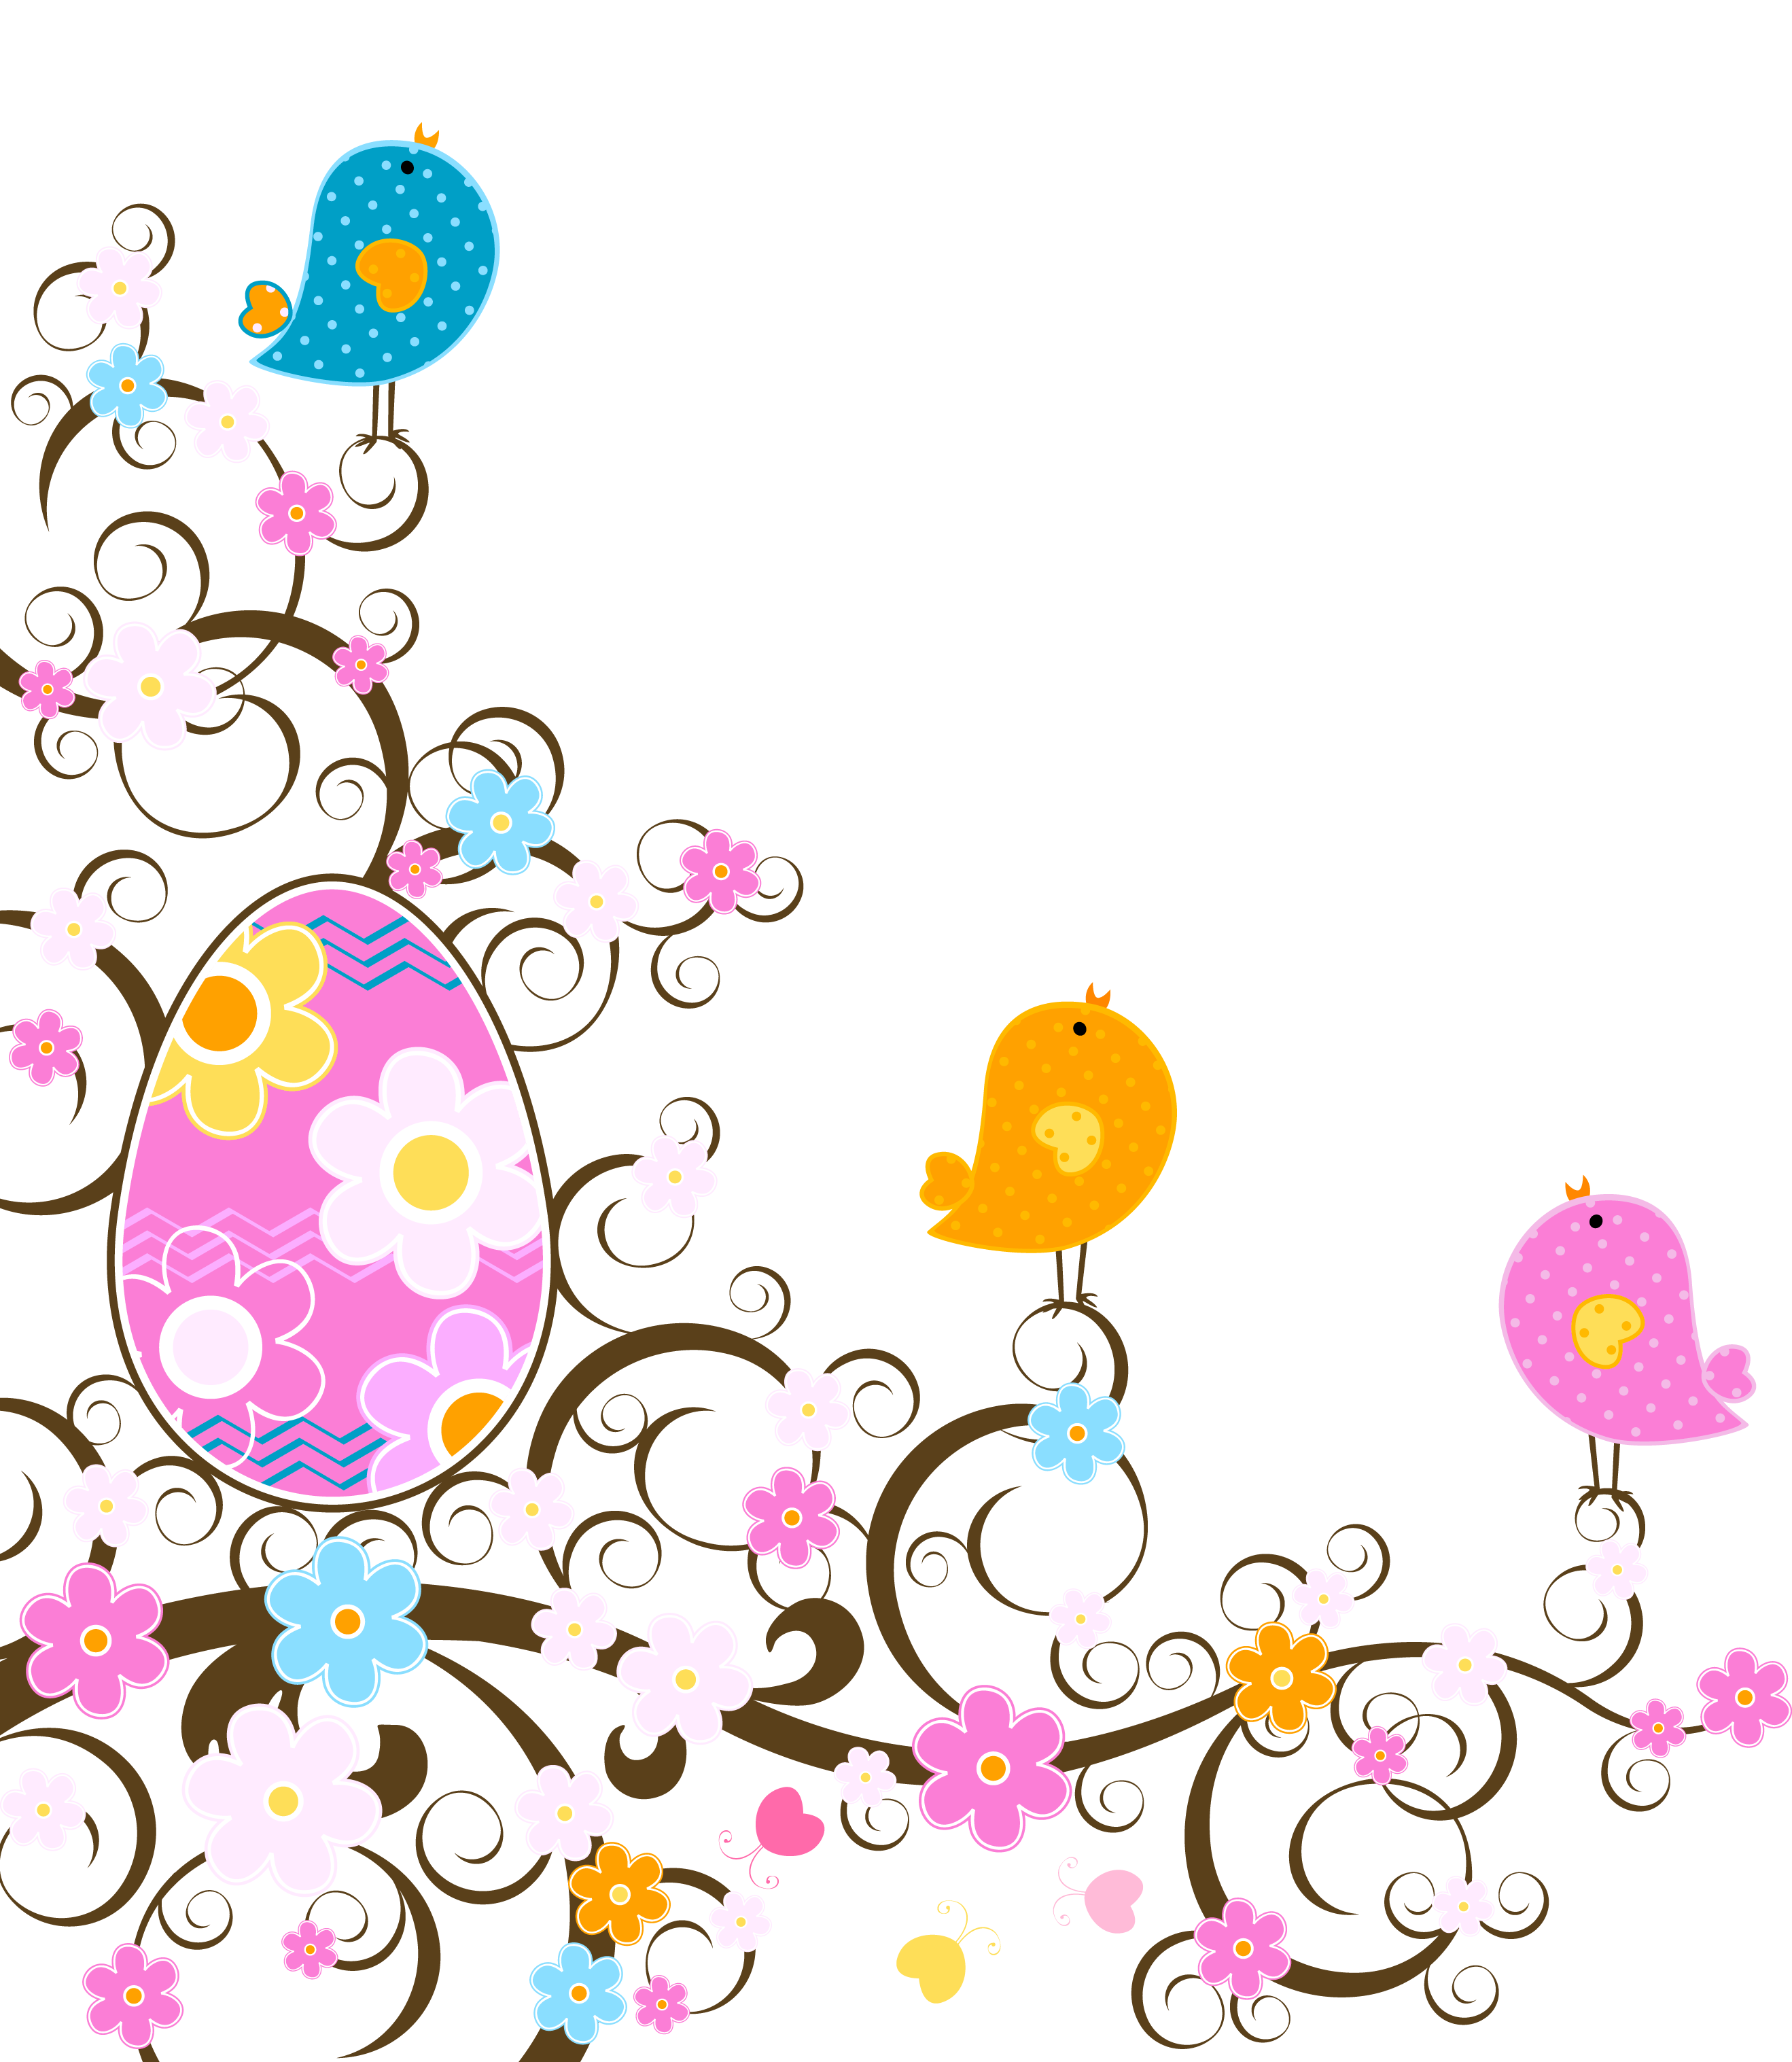 Flowers at getdrawings com. Garden clipart easter